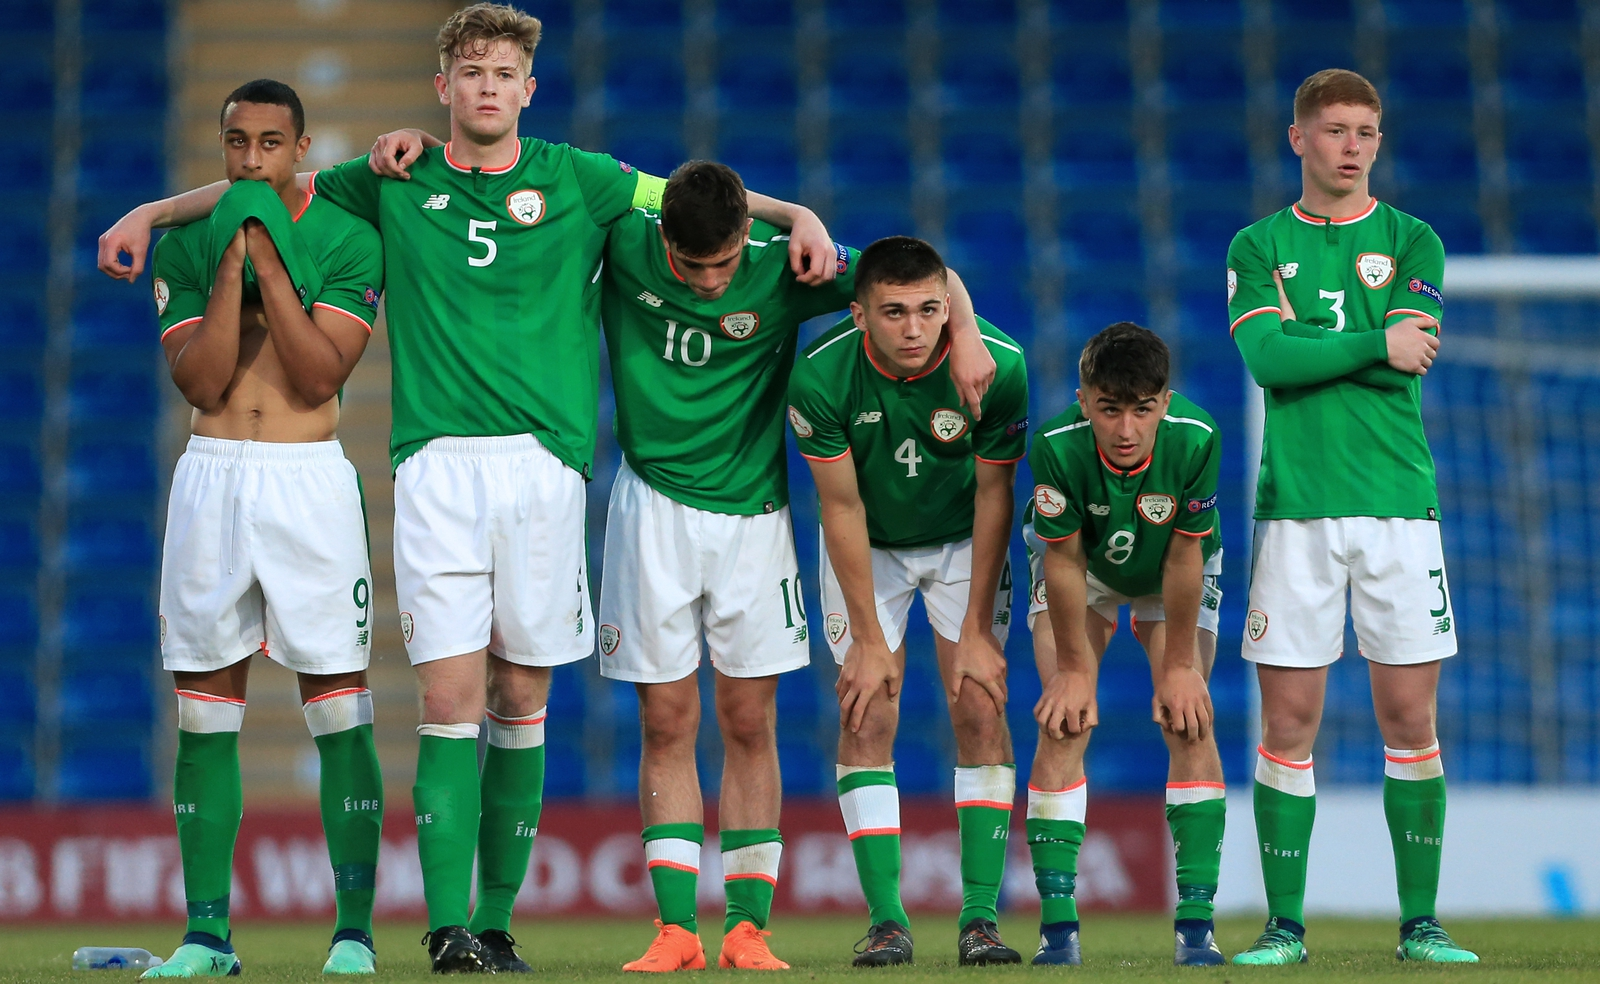 Image - Colin O'Brien's U17s lost a controversial penalty shootout in European quarter-final